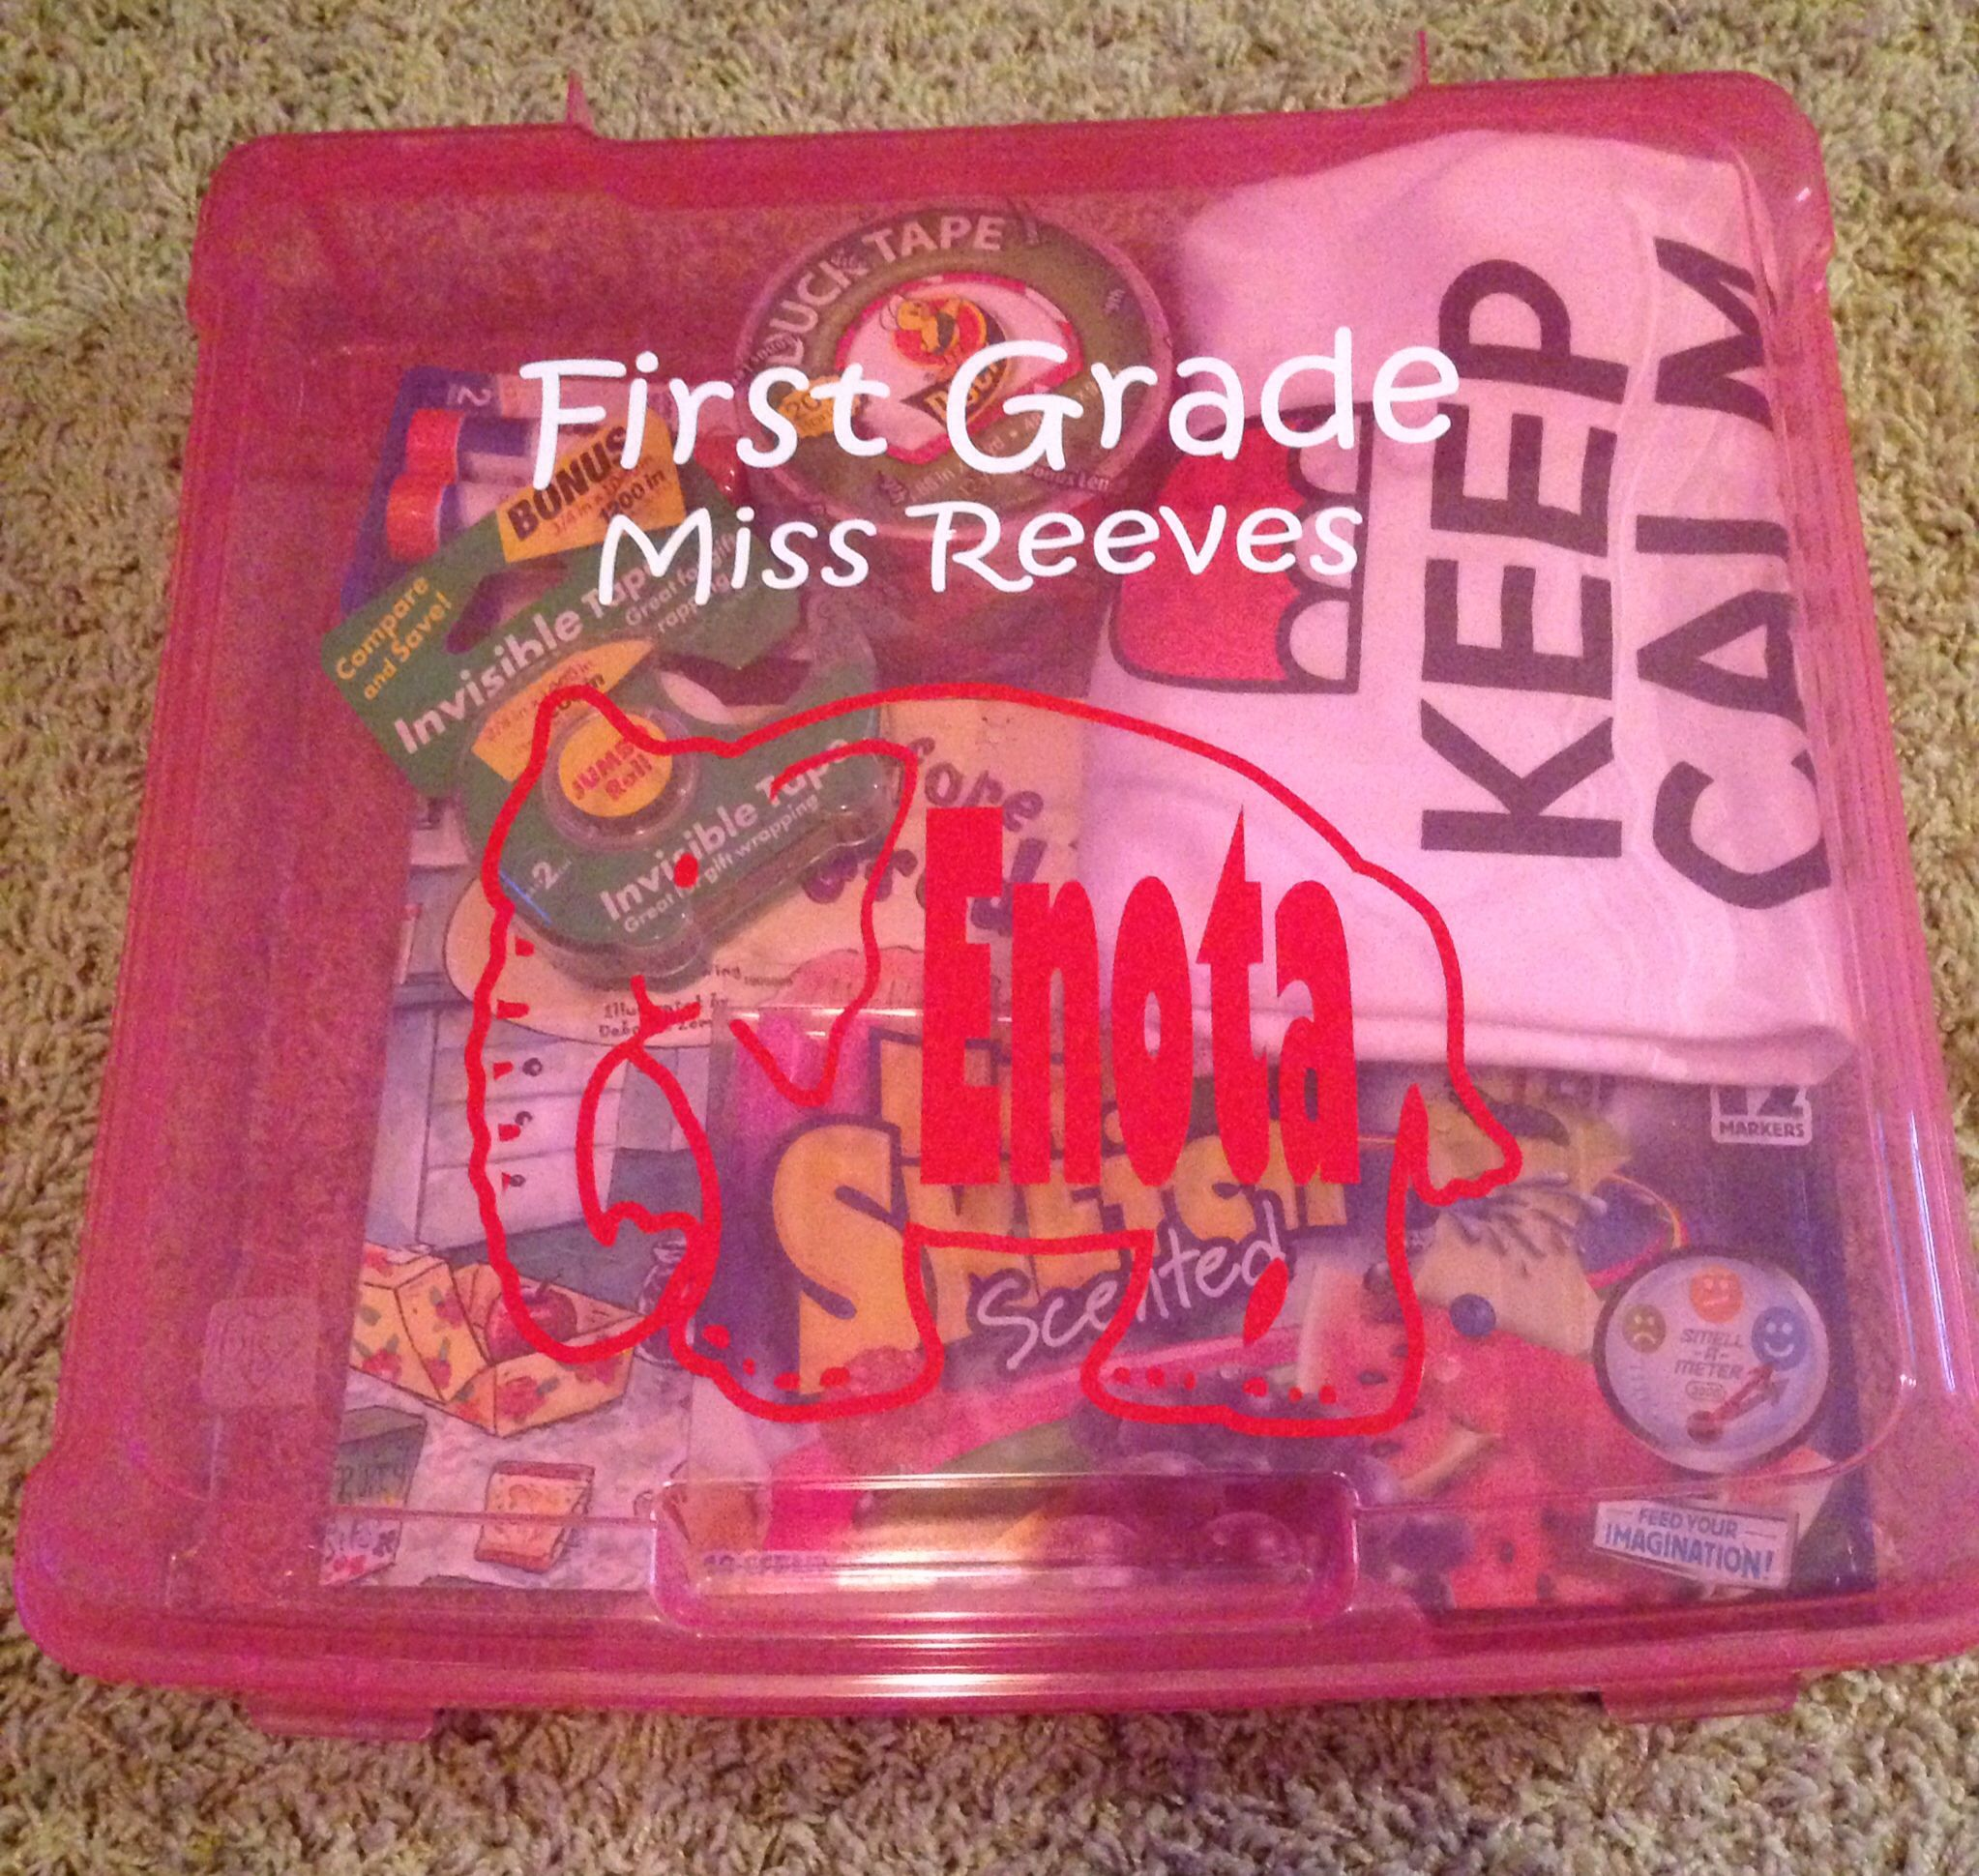 """First Grade First Day of School Gift for my daughter.  12x12 Scrapbook box from Michaels.  Silhouette Cameo vinyl letters and packed with some things to survive.  """"'Twas the night before 1st grade"""" book, duct tape, scotch tape, glue sticks, spirit shirt, and the super fun Mr. Sketch scented markers.  After we empty it, we will fill it with memories of the year.  Ex: report cards, art work, etc."""